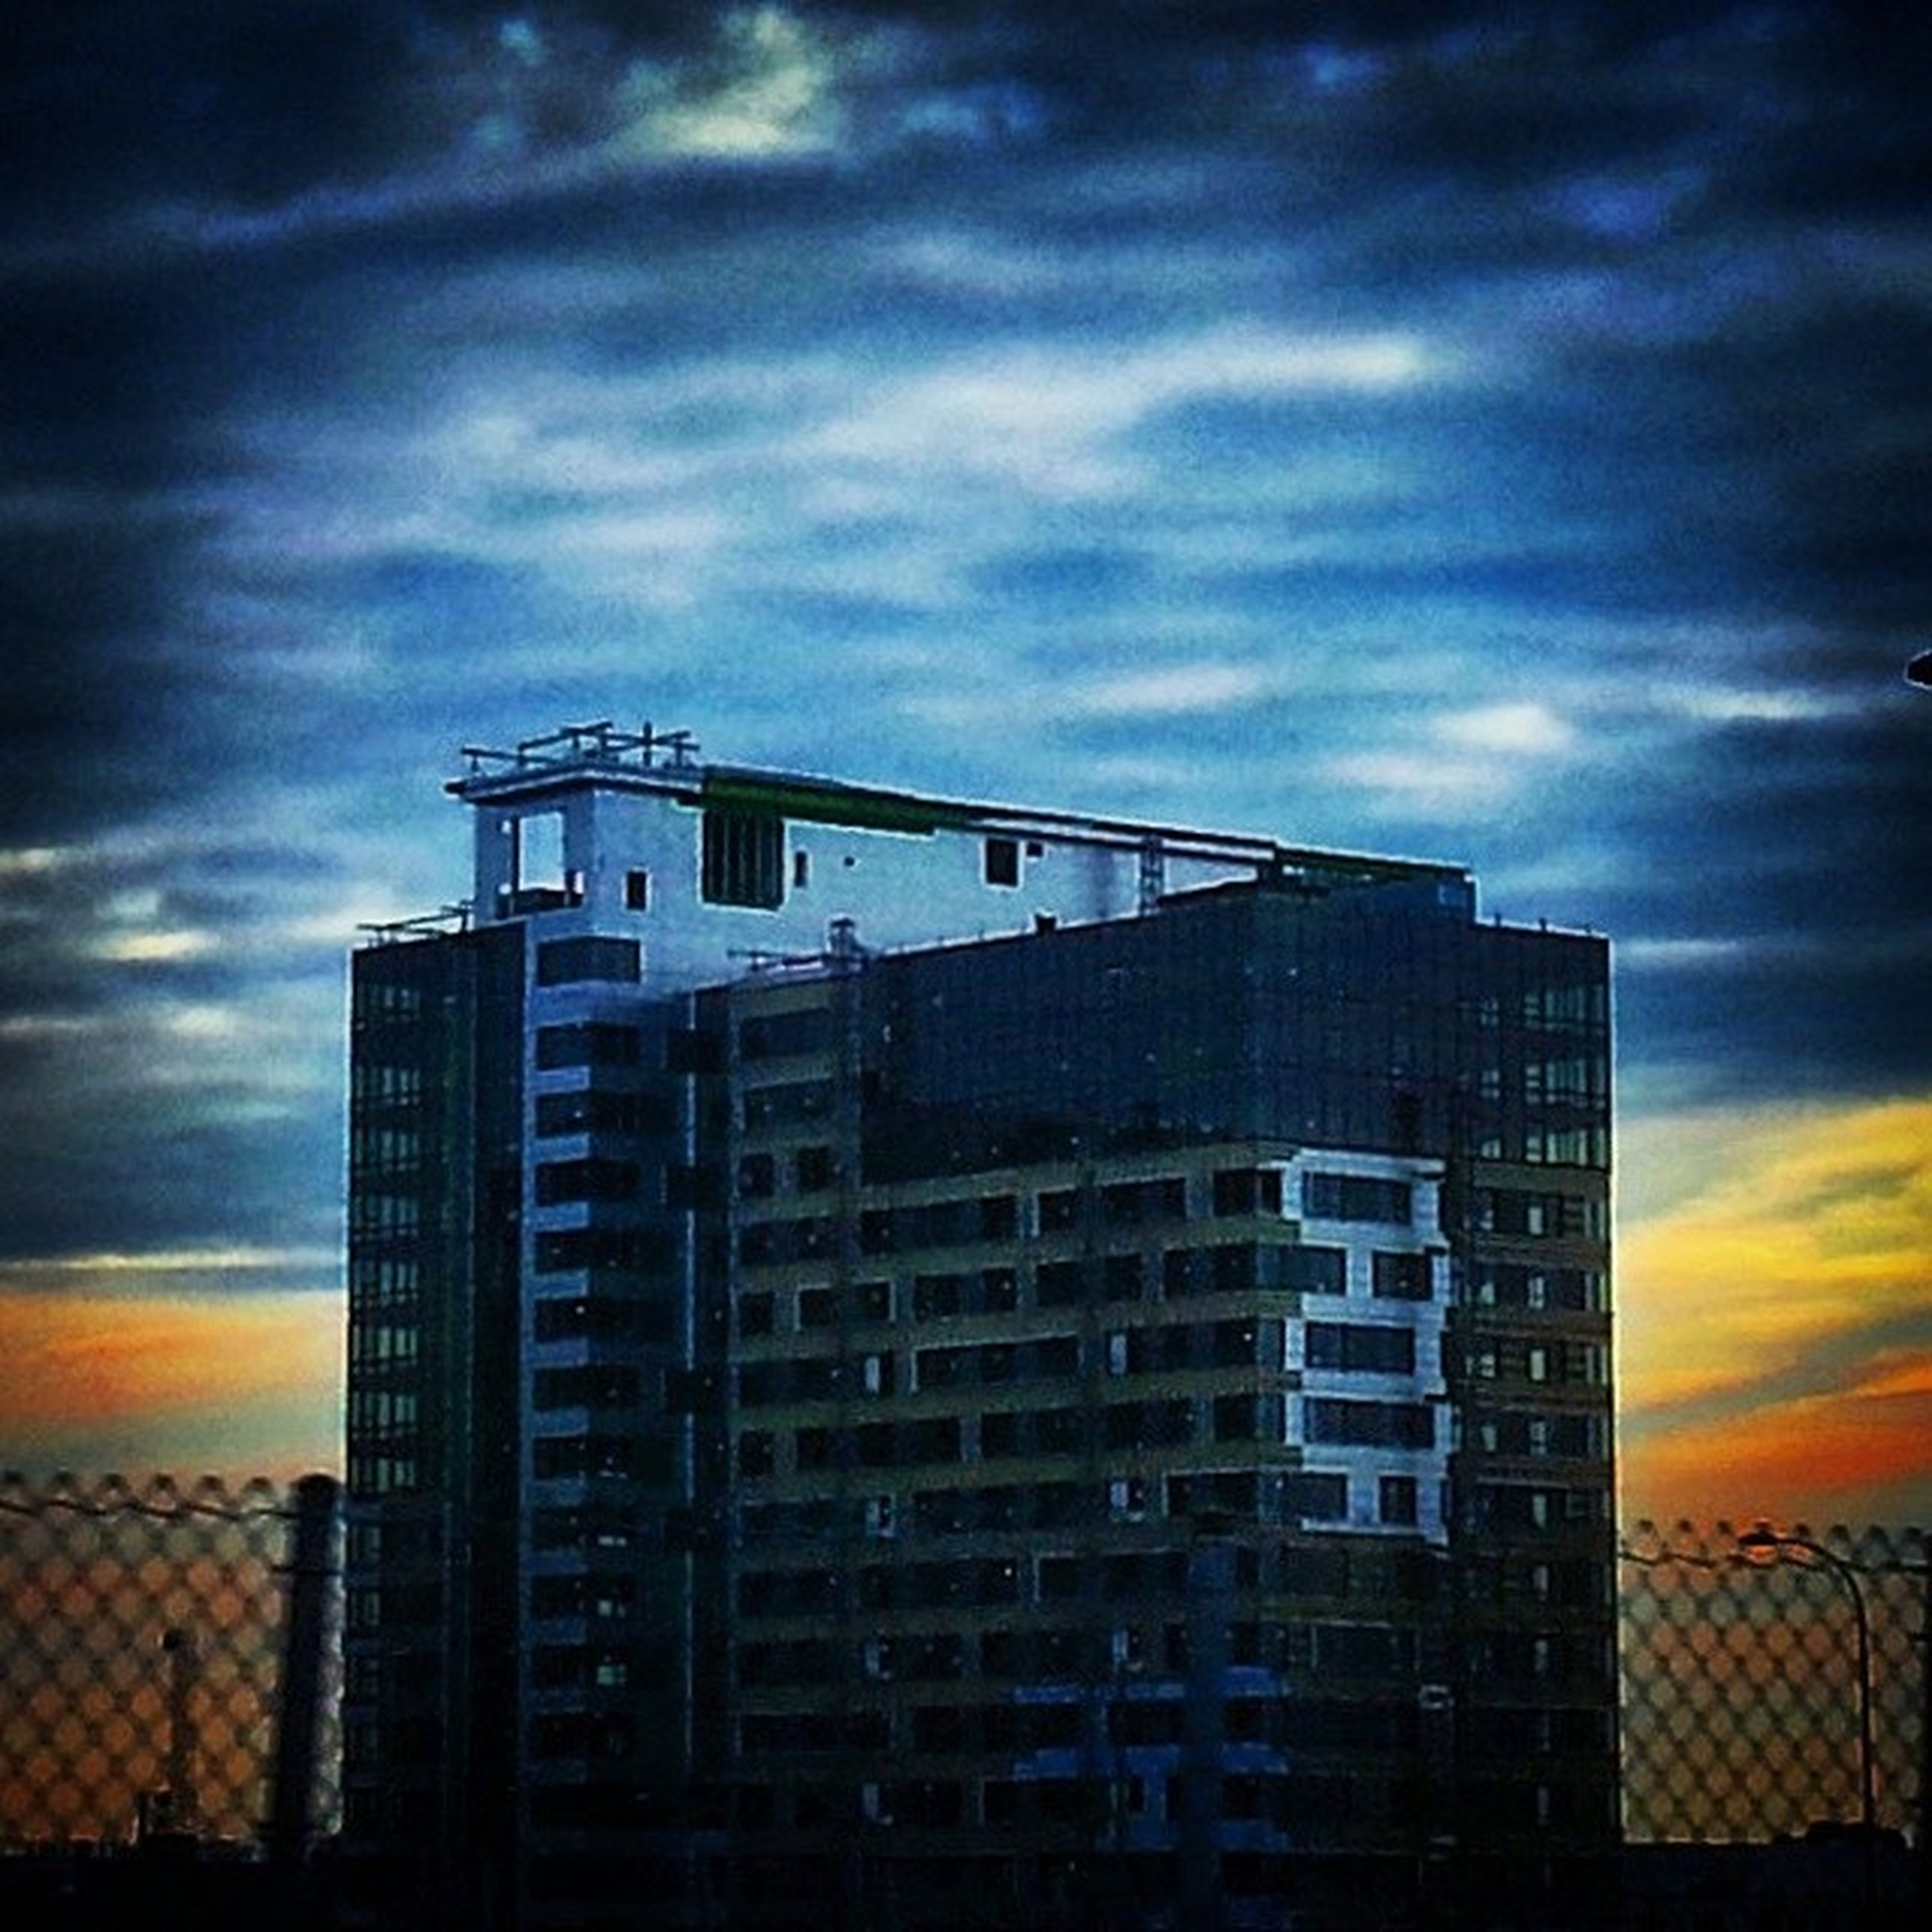 architecture, building exterior, built structure, sky, cloud - sky, sunset, cloudy, low angle view, cloud, city, building, window, modern, orange color, residential building, residential structure, weather, dramatic sky, outdoors, no people